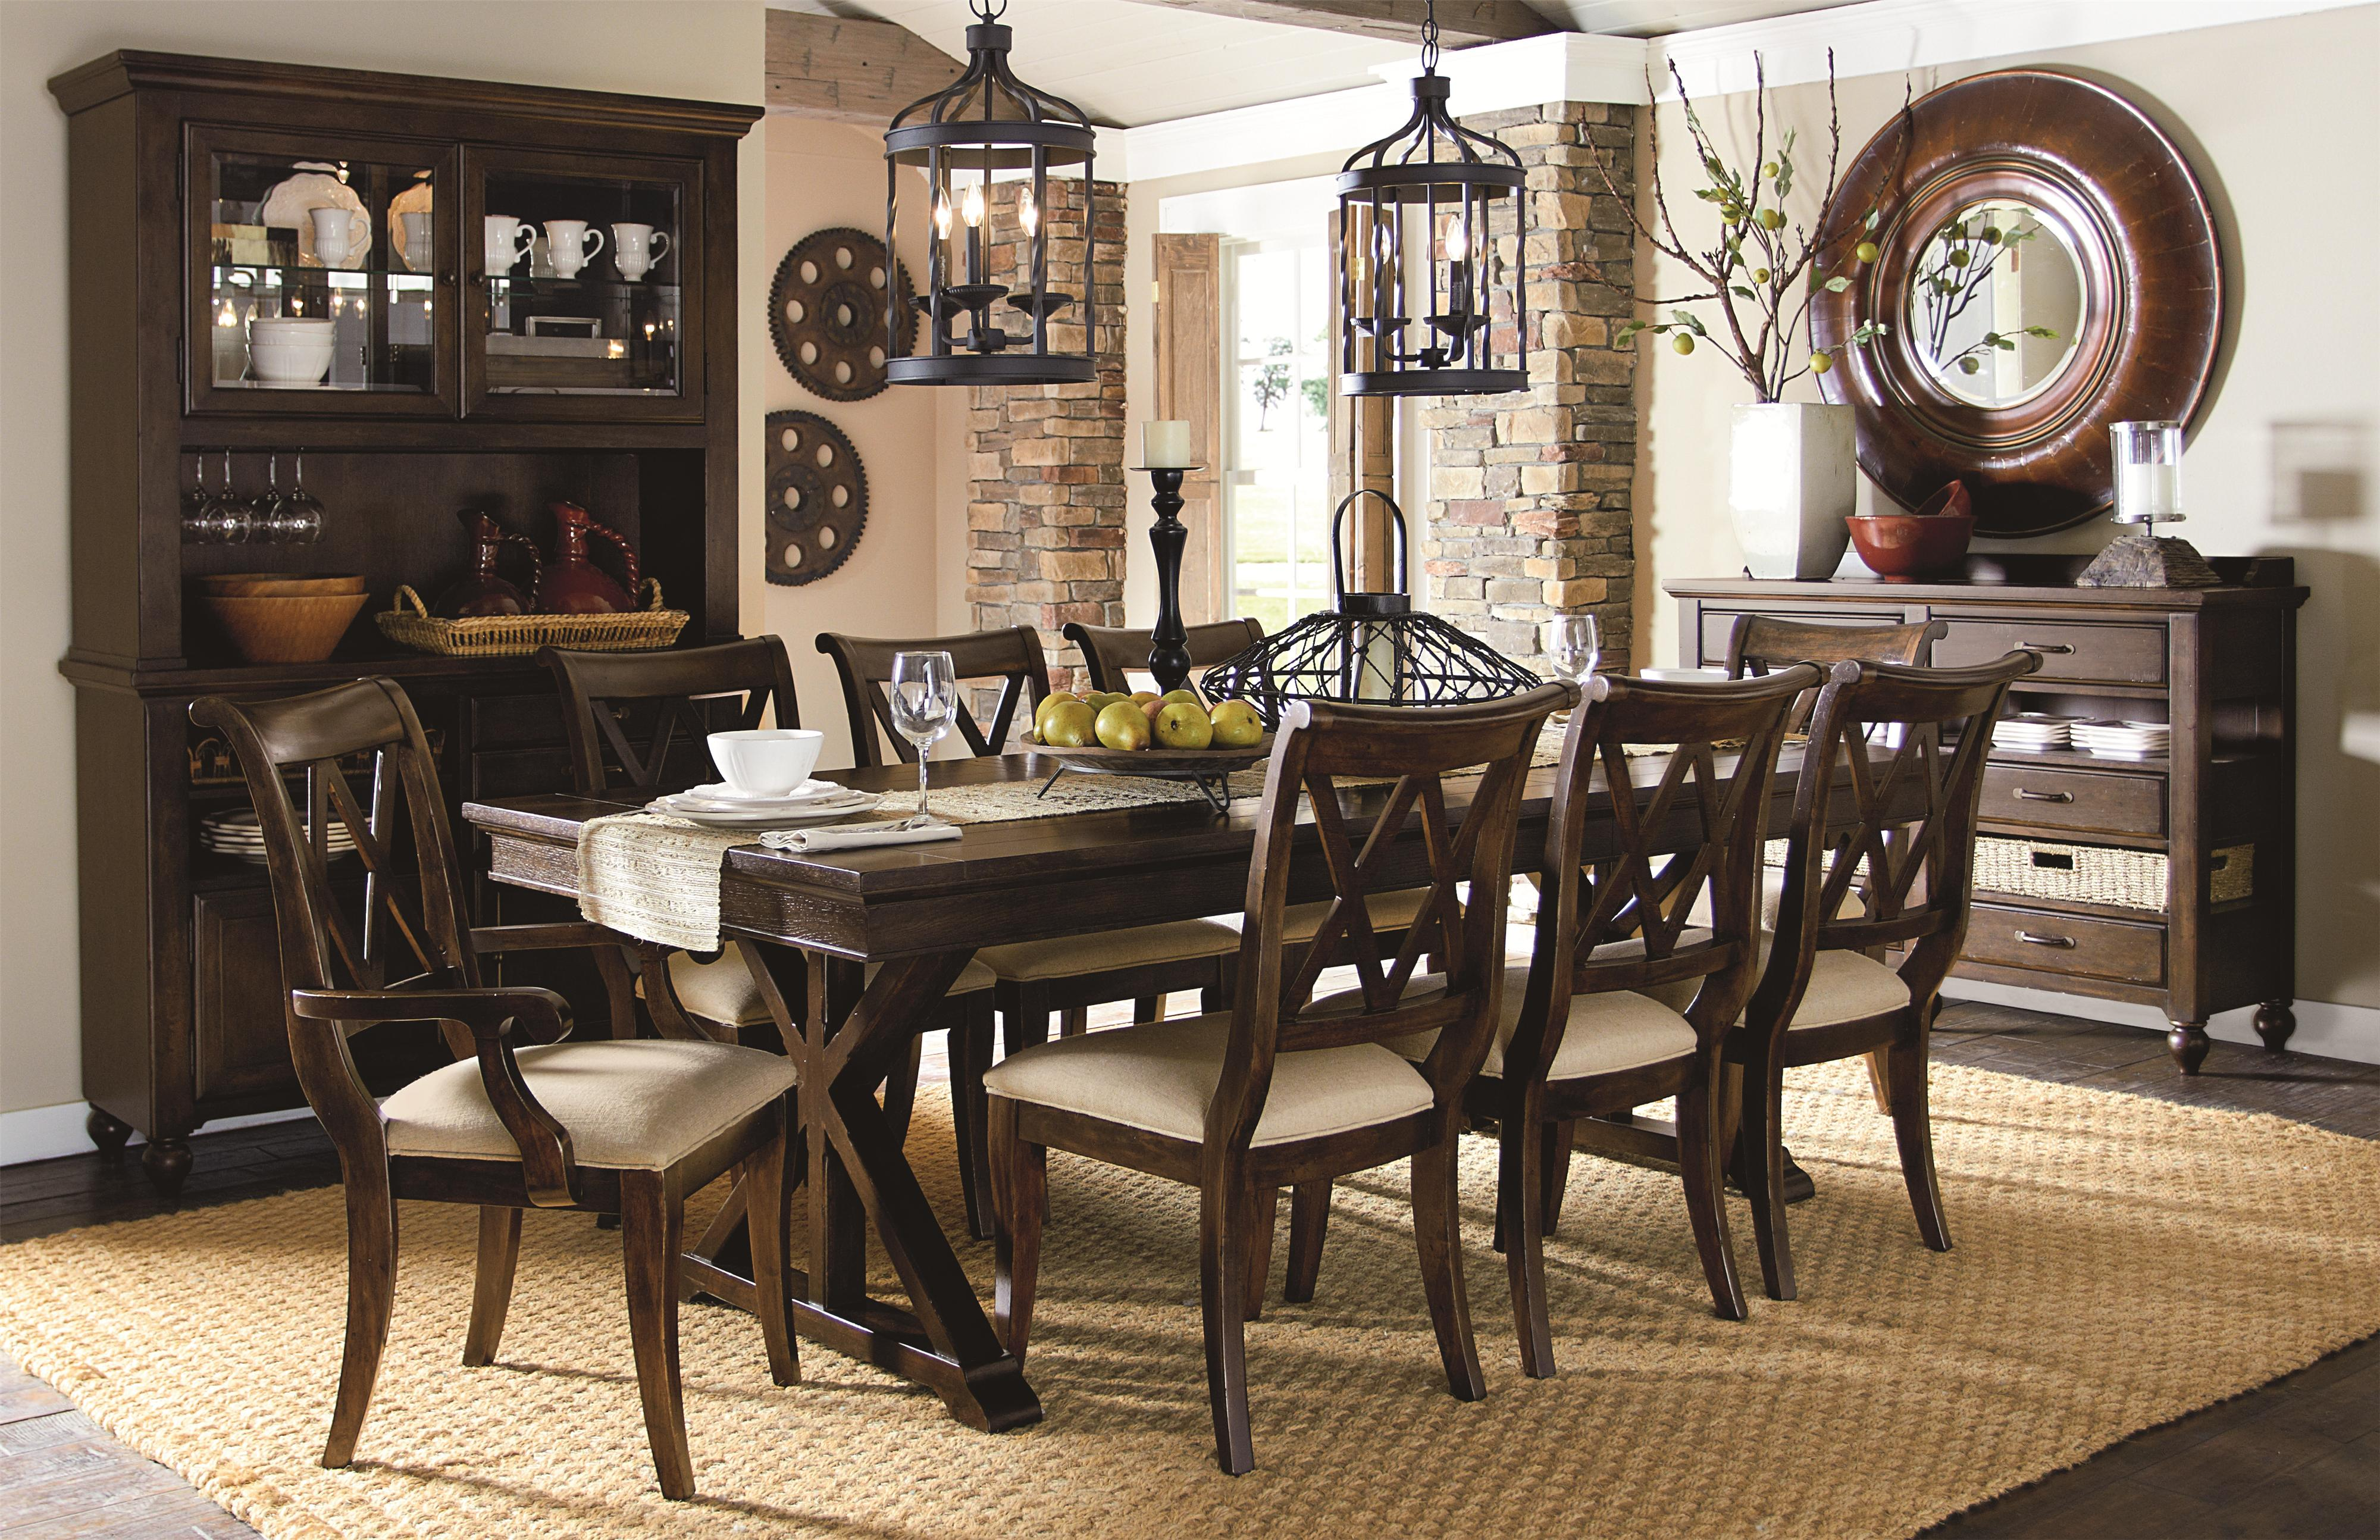 Kijiji Sofa Cornwall 9 Piece Dining Set With X Back Chairs By Legacy Classic Wolf